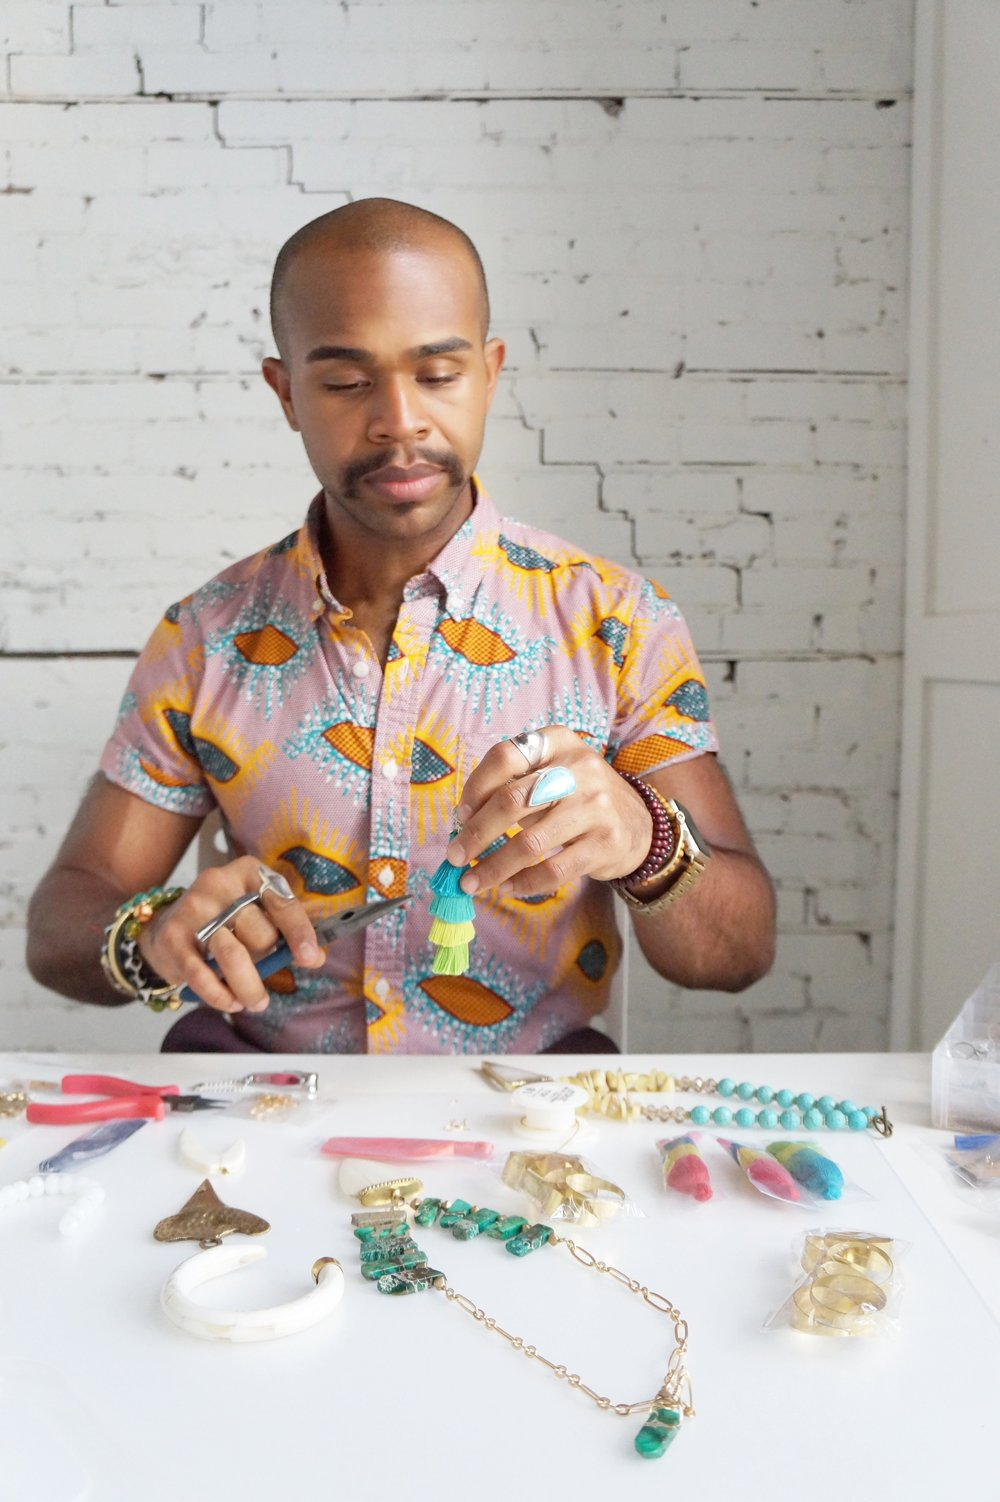 Andrea Fenise Memphis Fashion Blogger shares IVJD open studio